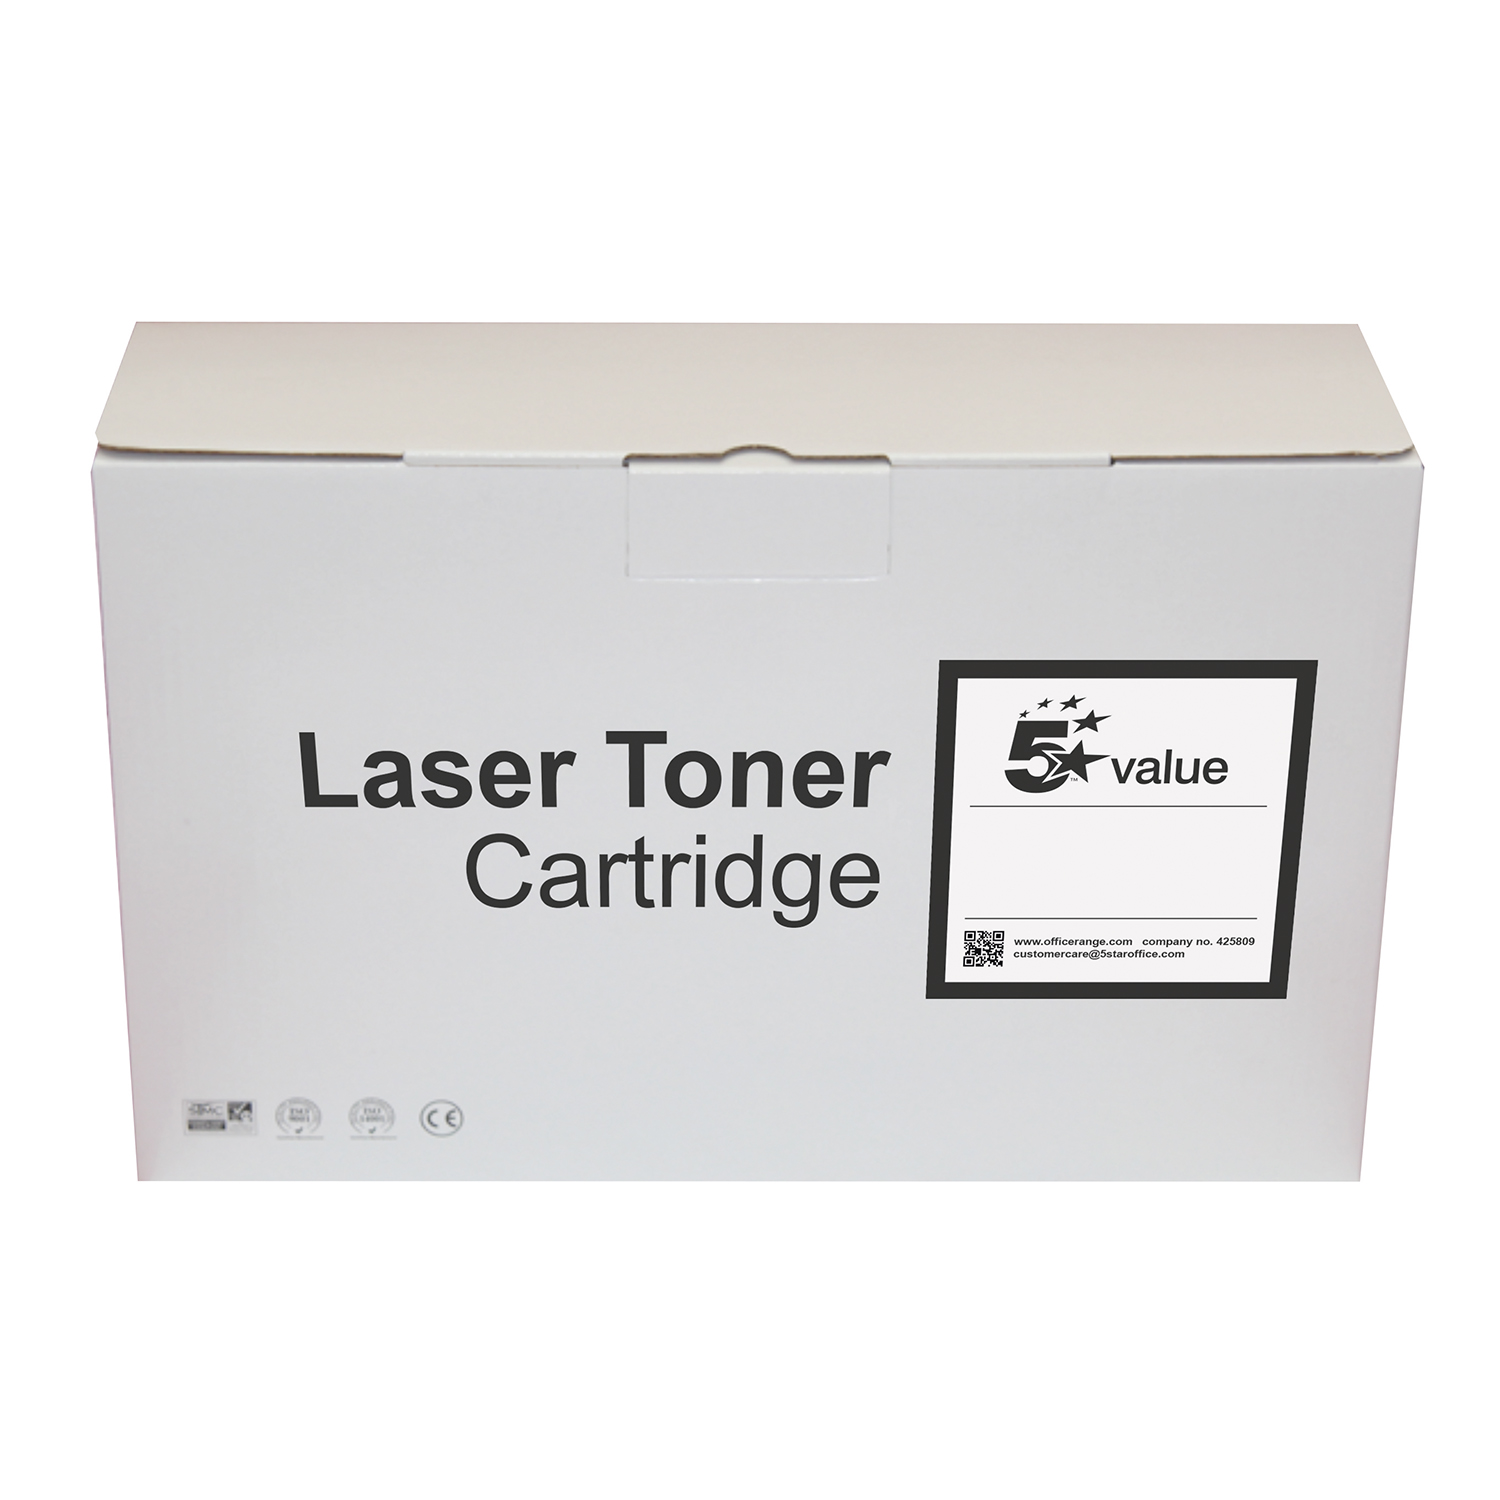 5 Star Value Remanufactured Laser Toner Cartridge Page Life 3000pp Black Brother TN2000 Alternative